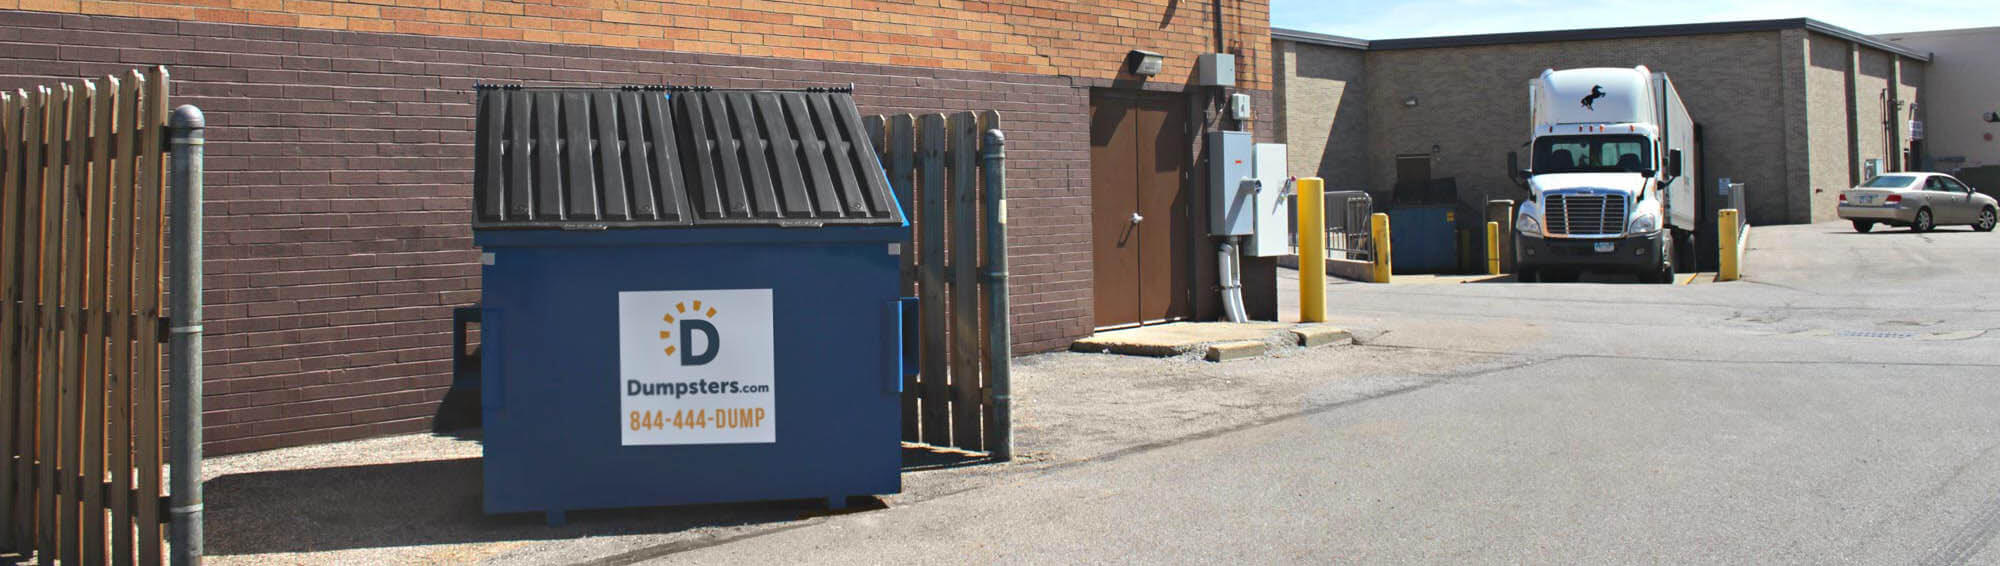 dumpsters for retailers